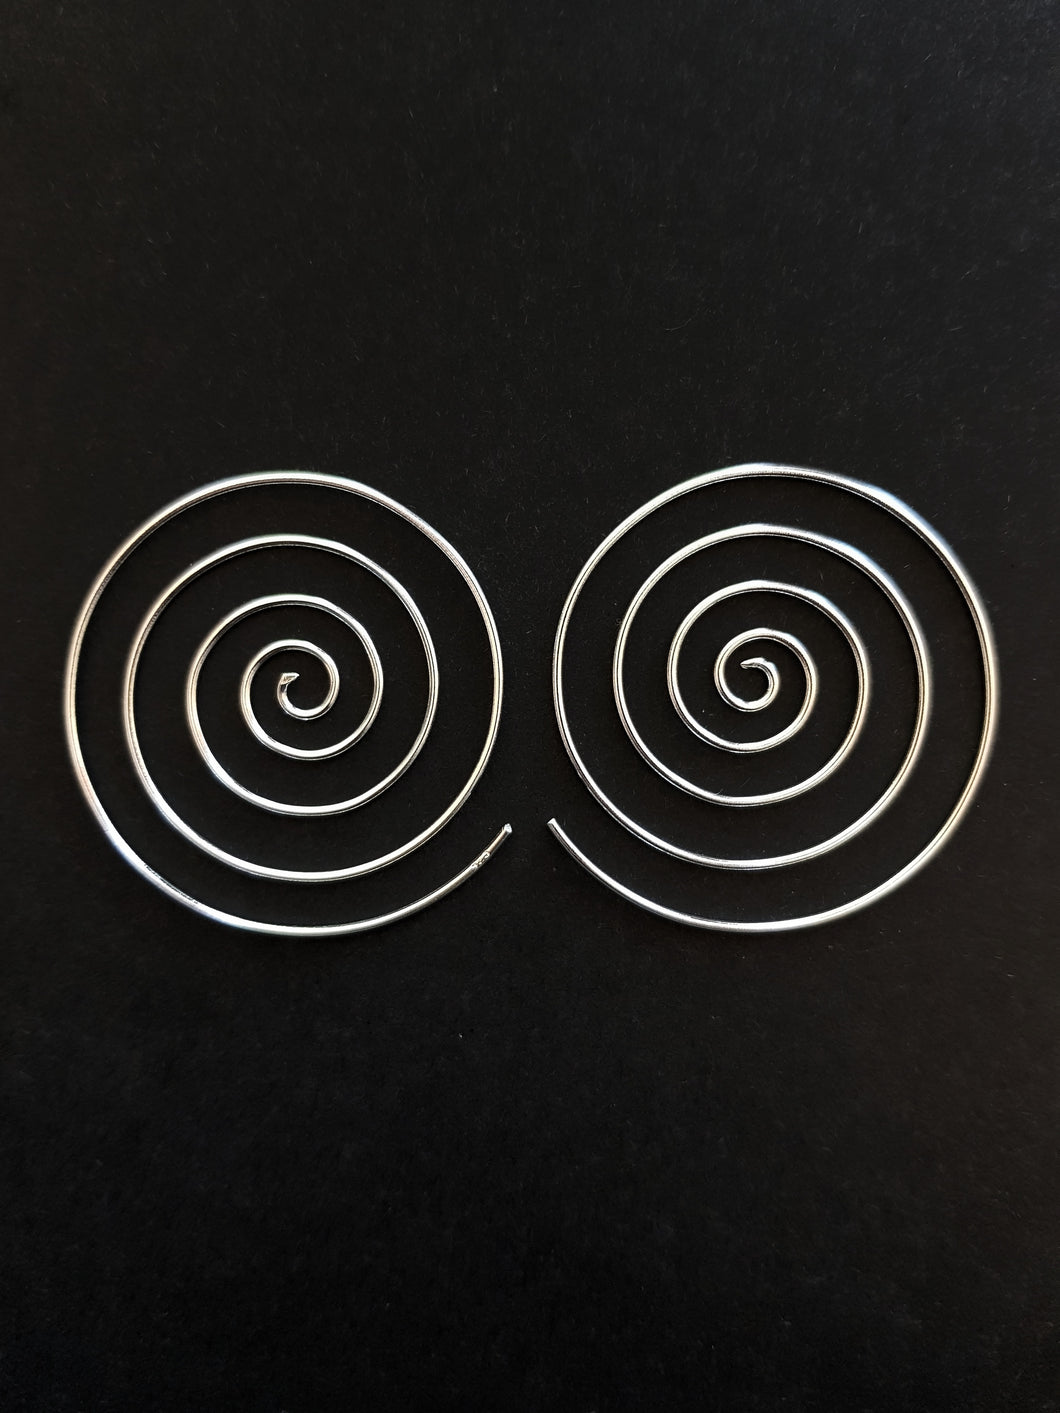 40mm Silver Spiral Earrings